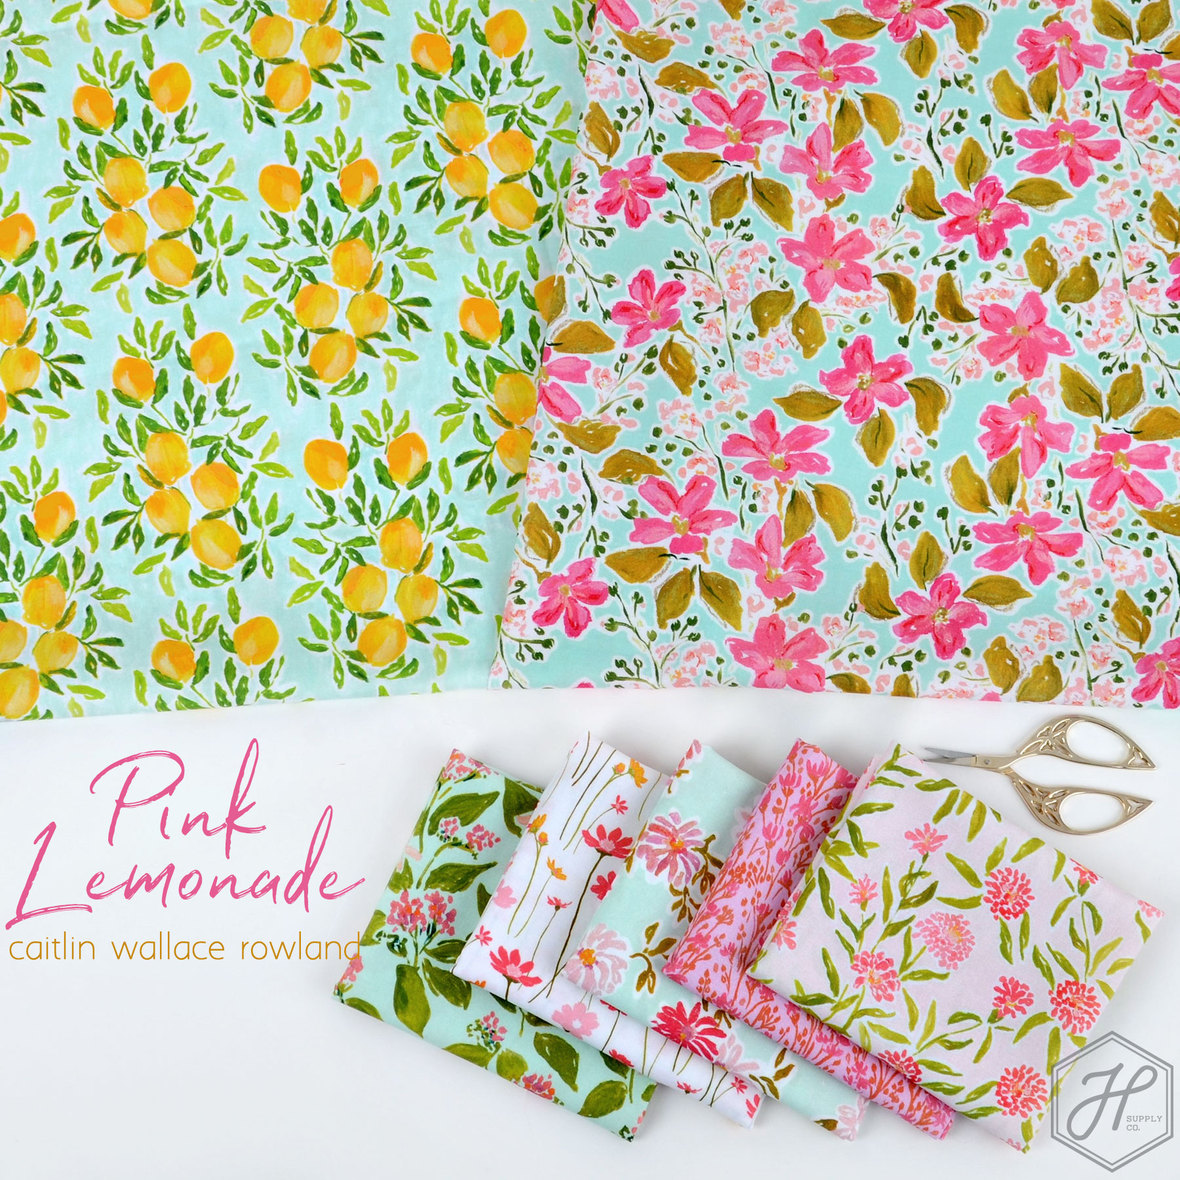 Pink-Lemonade-Fabric-Caitlin-Wallace-and-Dear-Stella-for-Hawthorne-Supply-Co